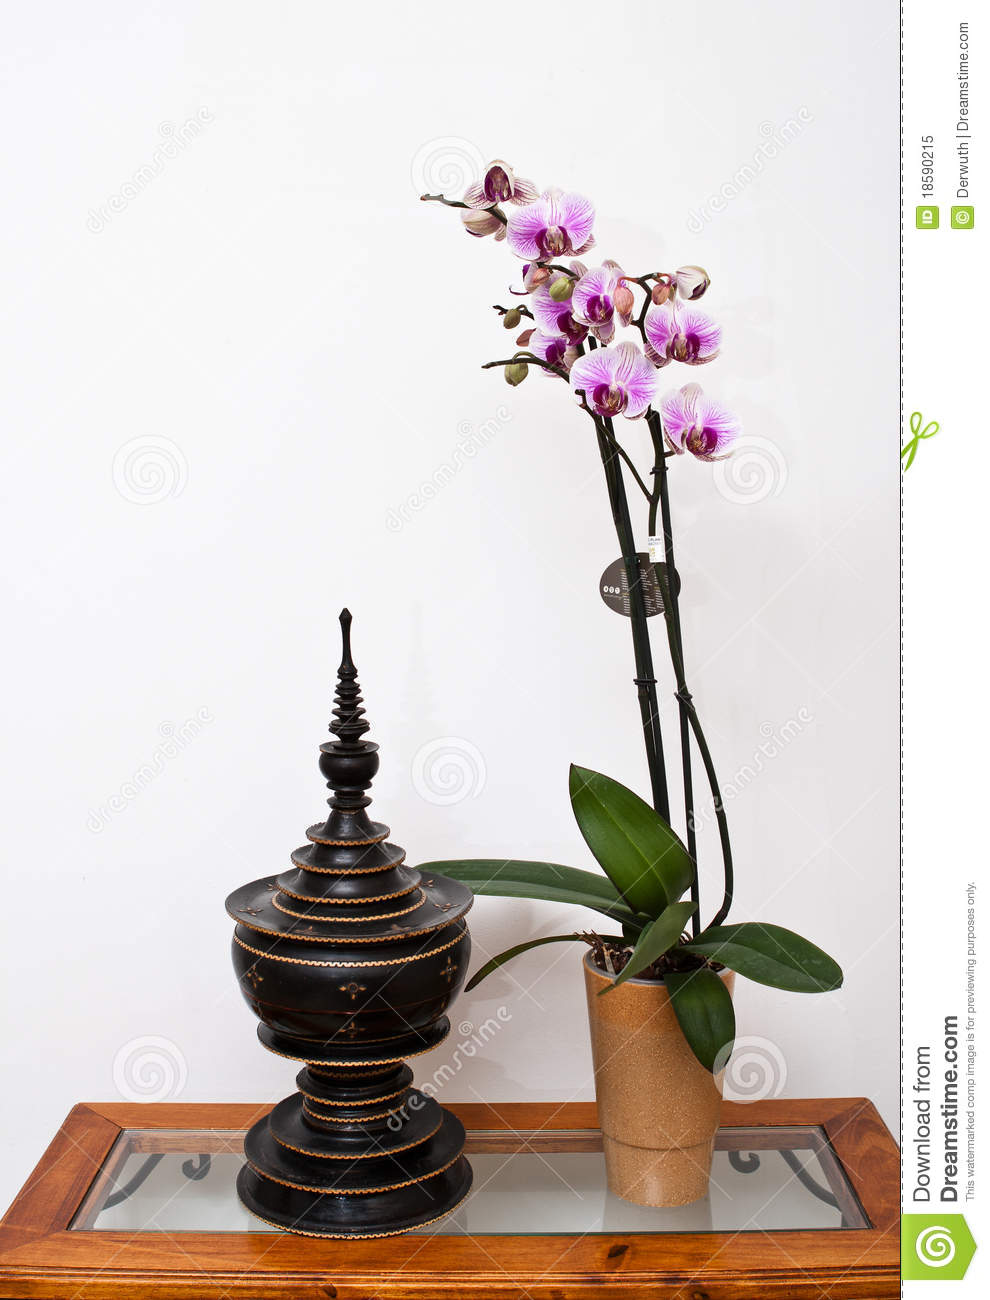 Zen ambiance with orchid royalty free stock photo image - Toilette ambiance zen ...